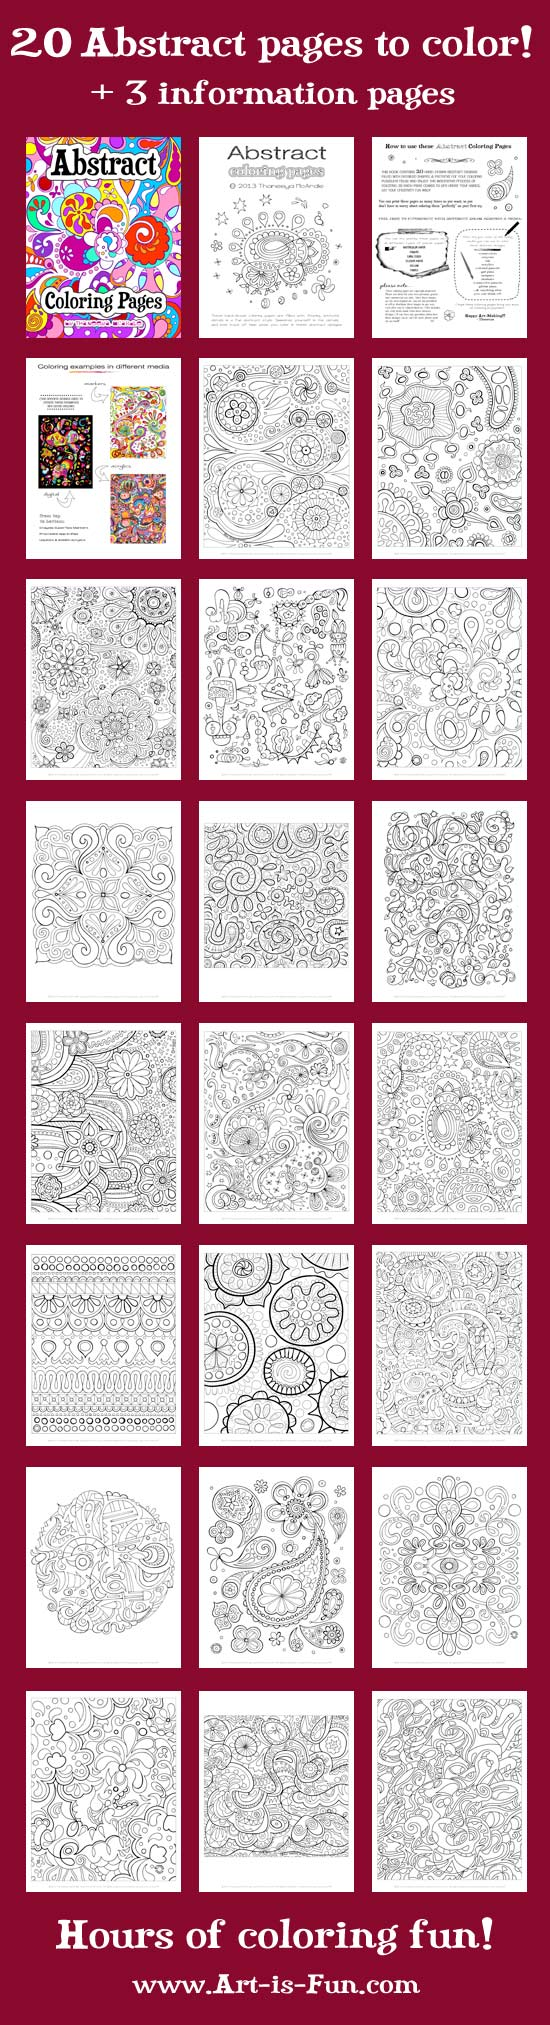 Printable Abstract Coloring Pages Overview